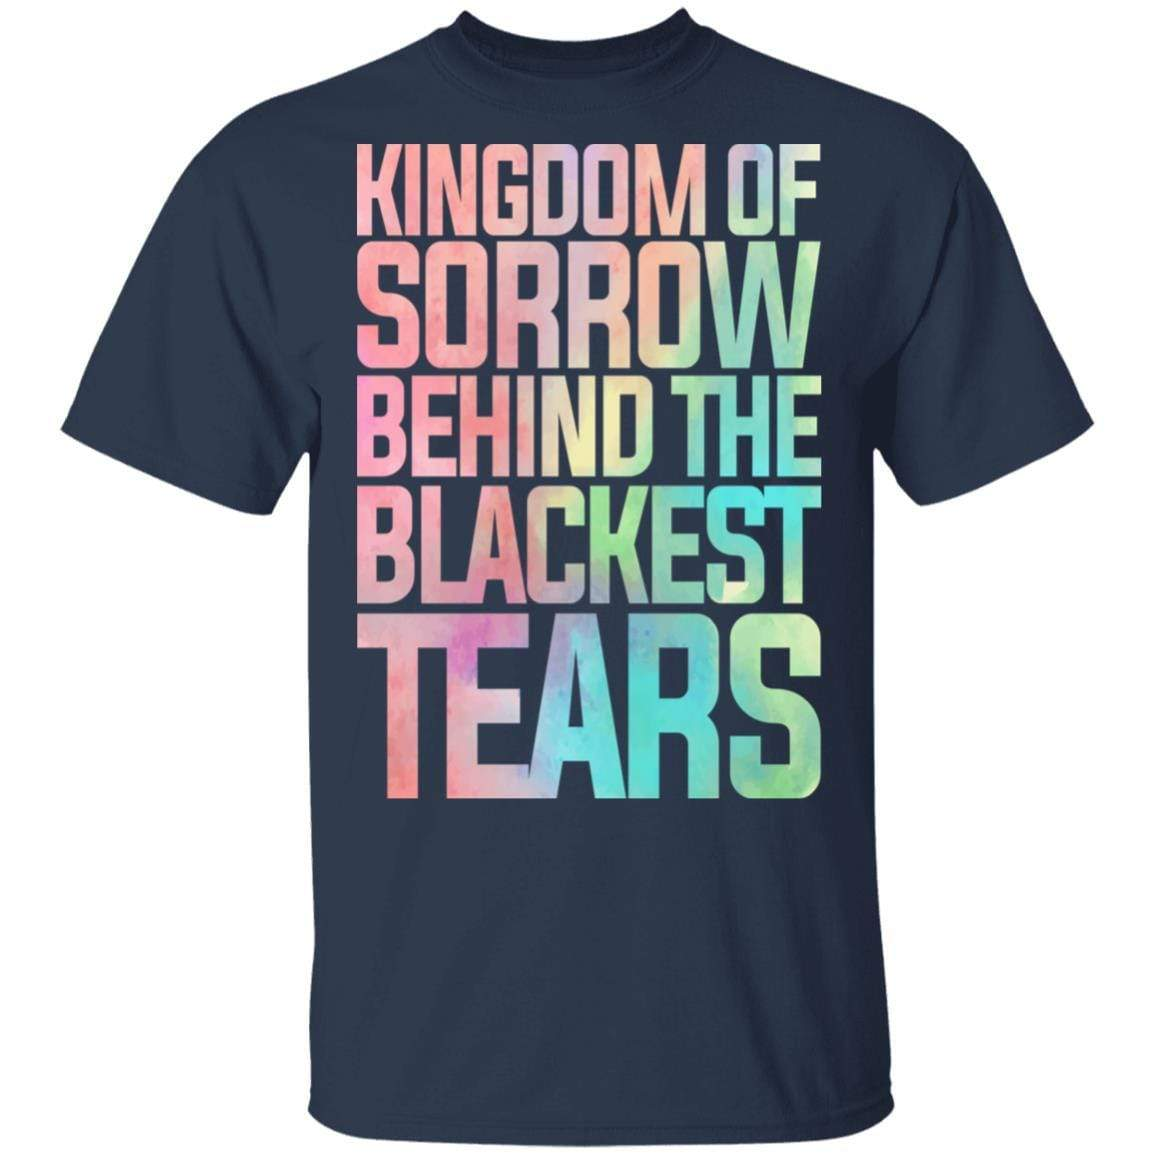 Kingdom Of Sorrow Behind The Blackest Tears T-Shirts, Hoodies 1049-9966-87589179-48248 - Tee Ript